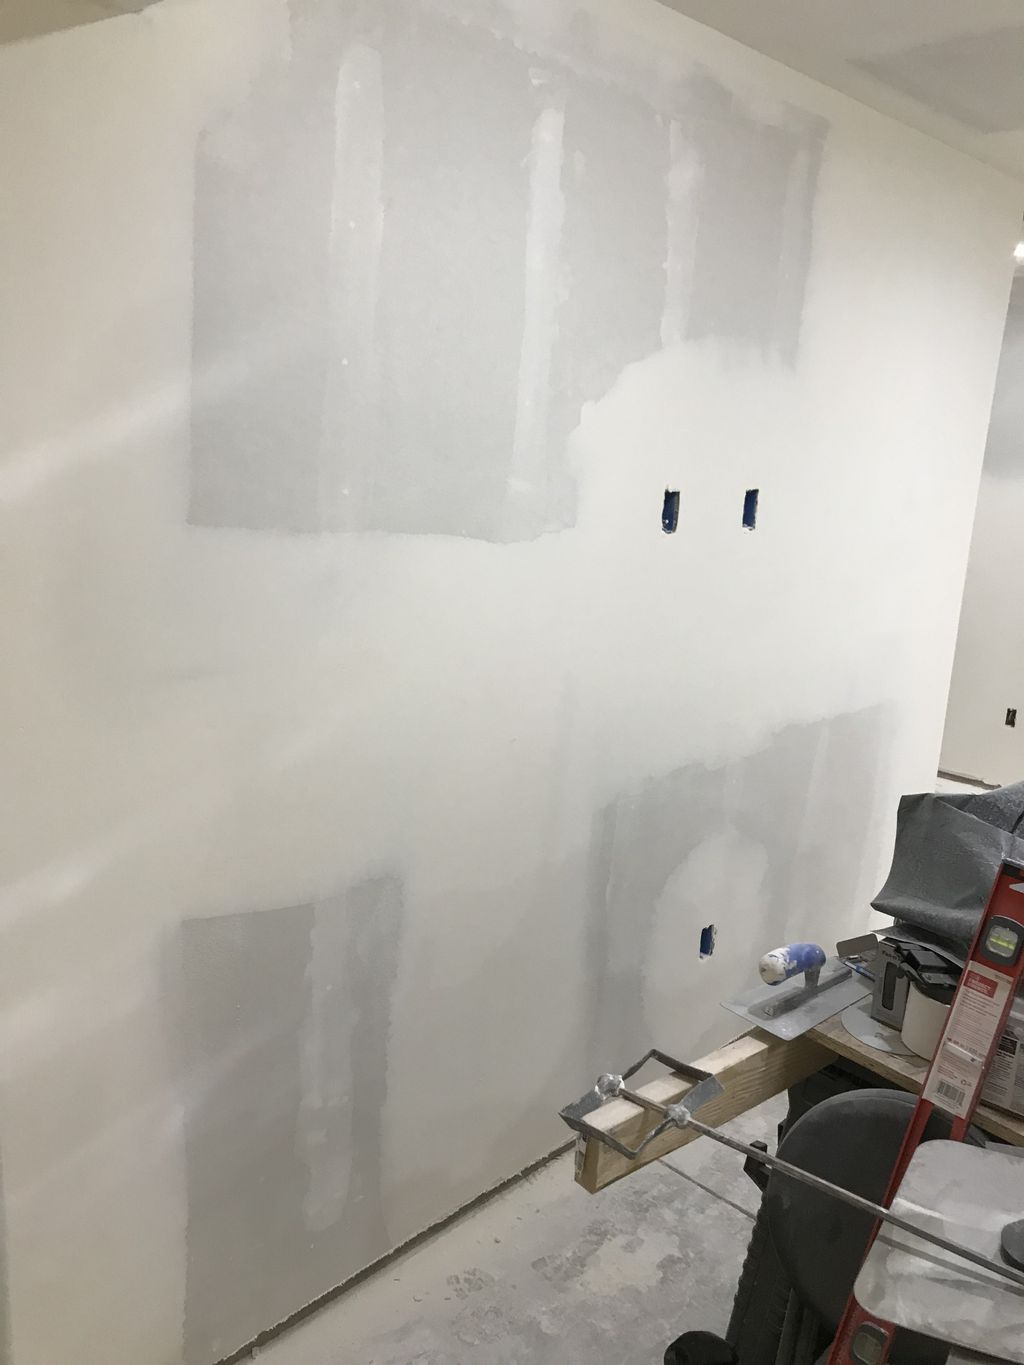 Drywall hanging and finishing level 3 knockdown